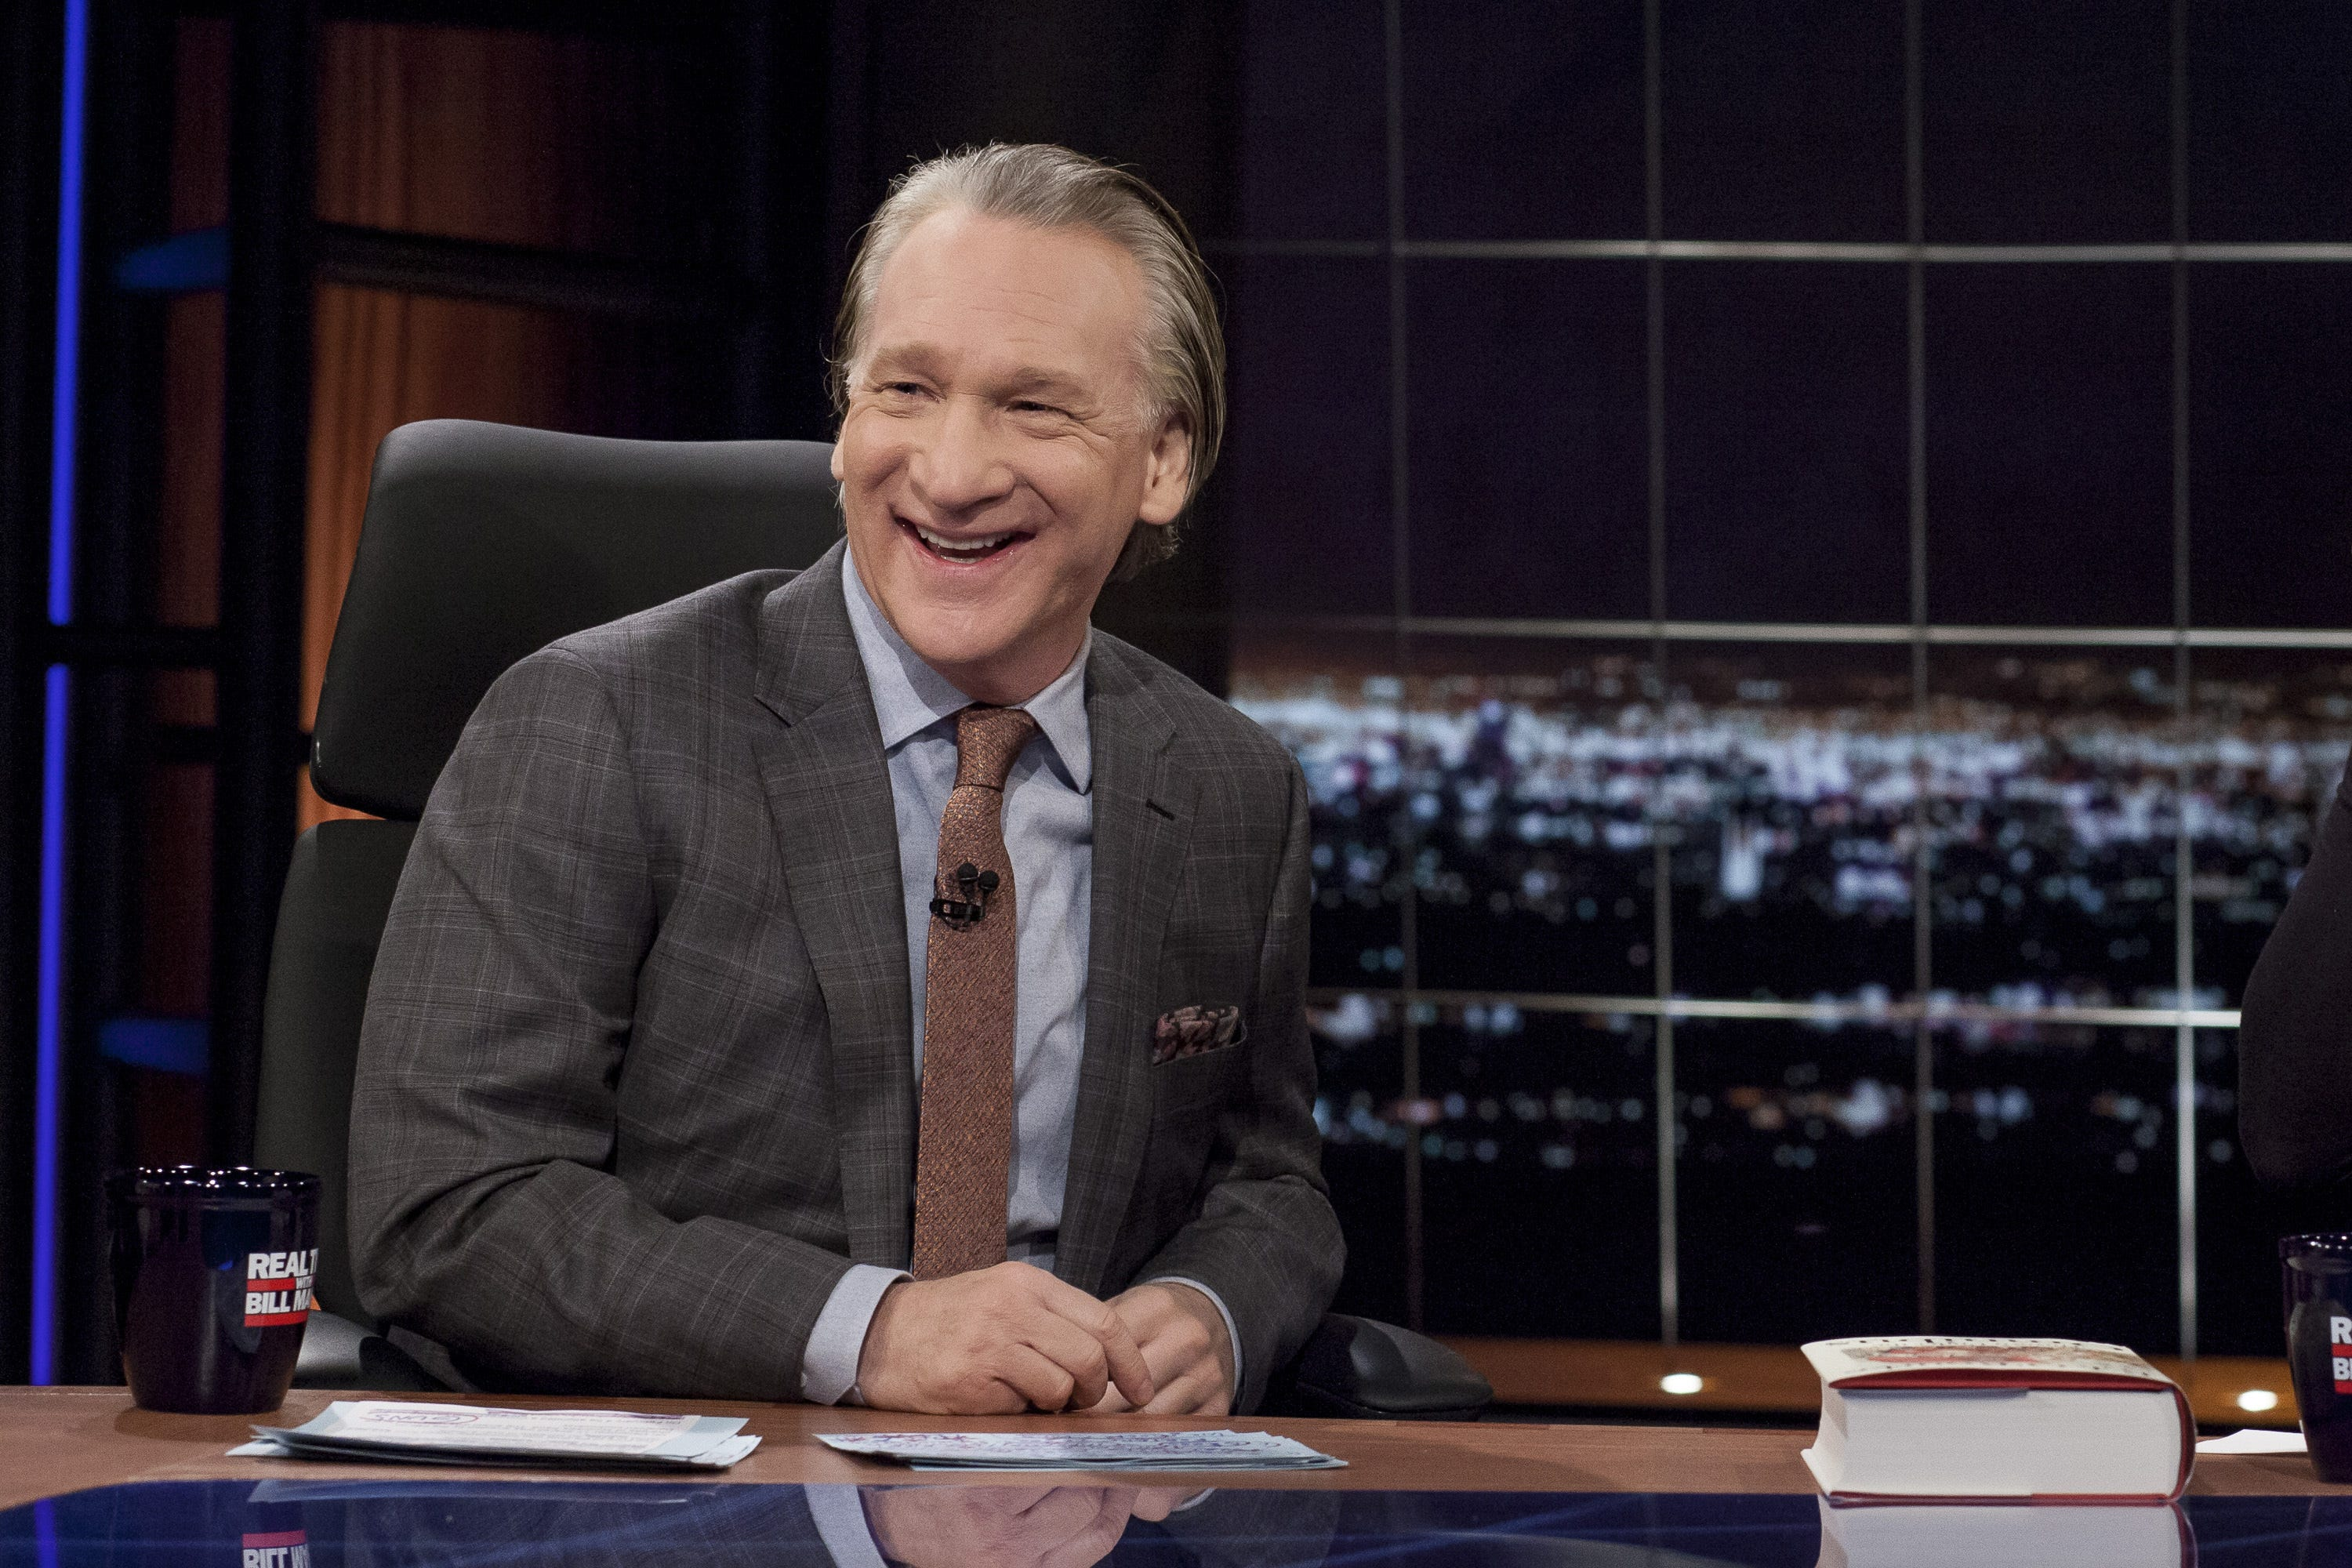 Bill Maher goes in on President Trump and relationship with Putin after show's two-month hiatus